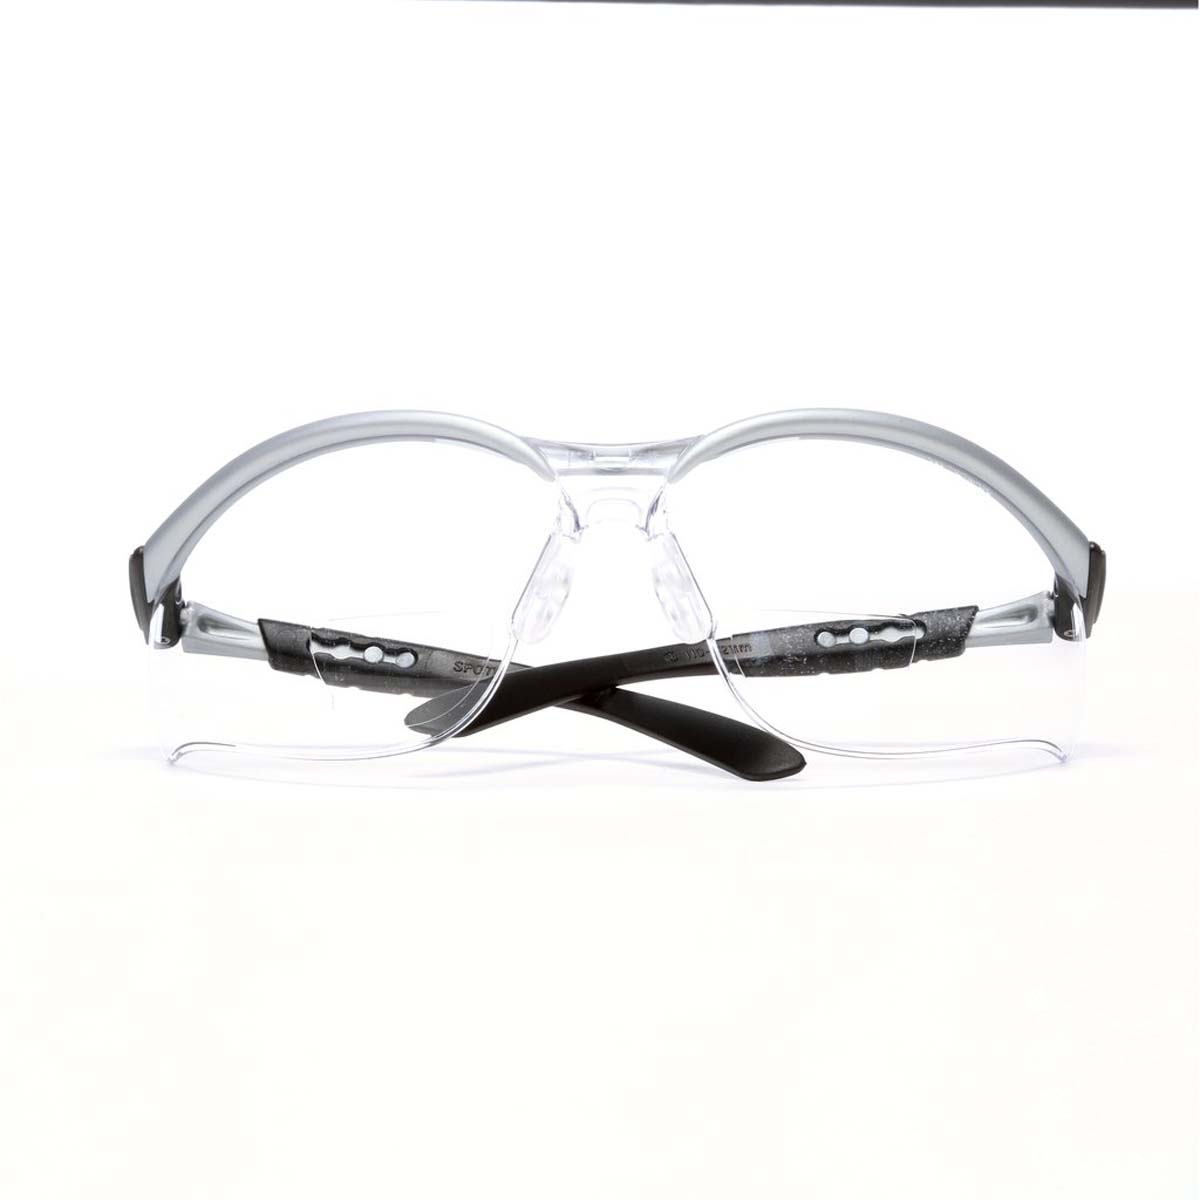 "3Mâ""¢ BXâ""¢ Reader Protective Eyewear 11376-00000-20, Clear Lens, Silver Frame, +2.5 Diopter"